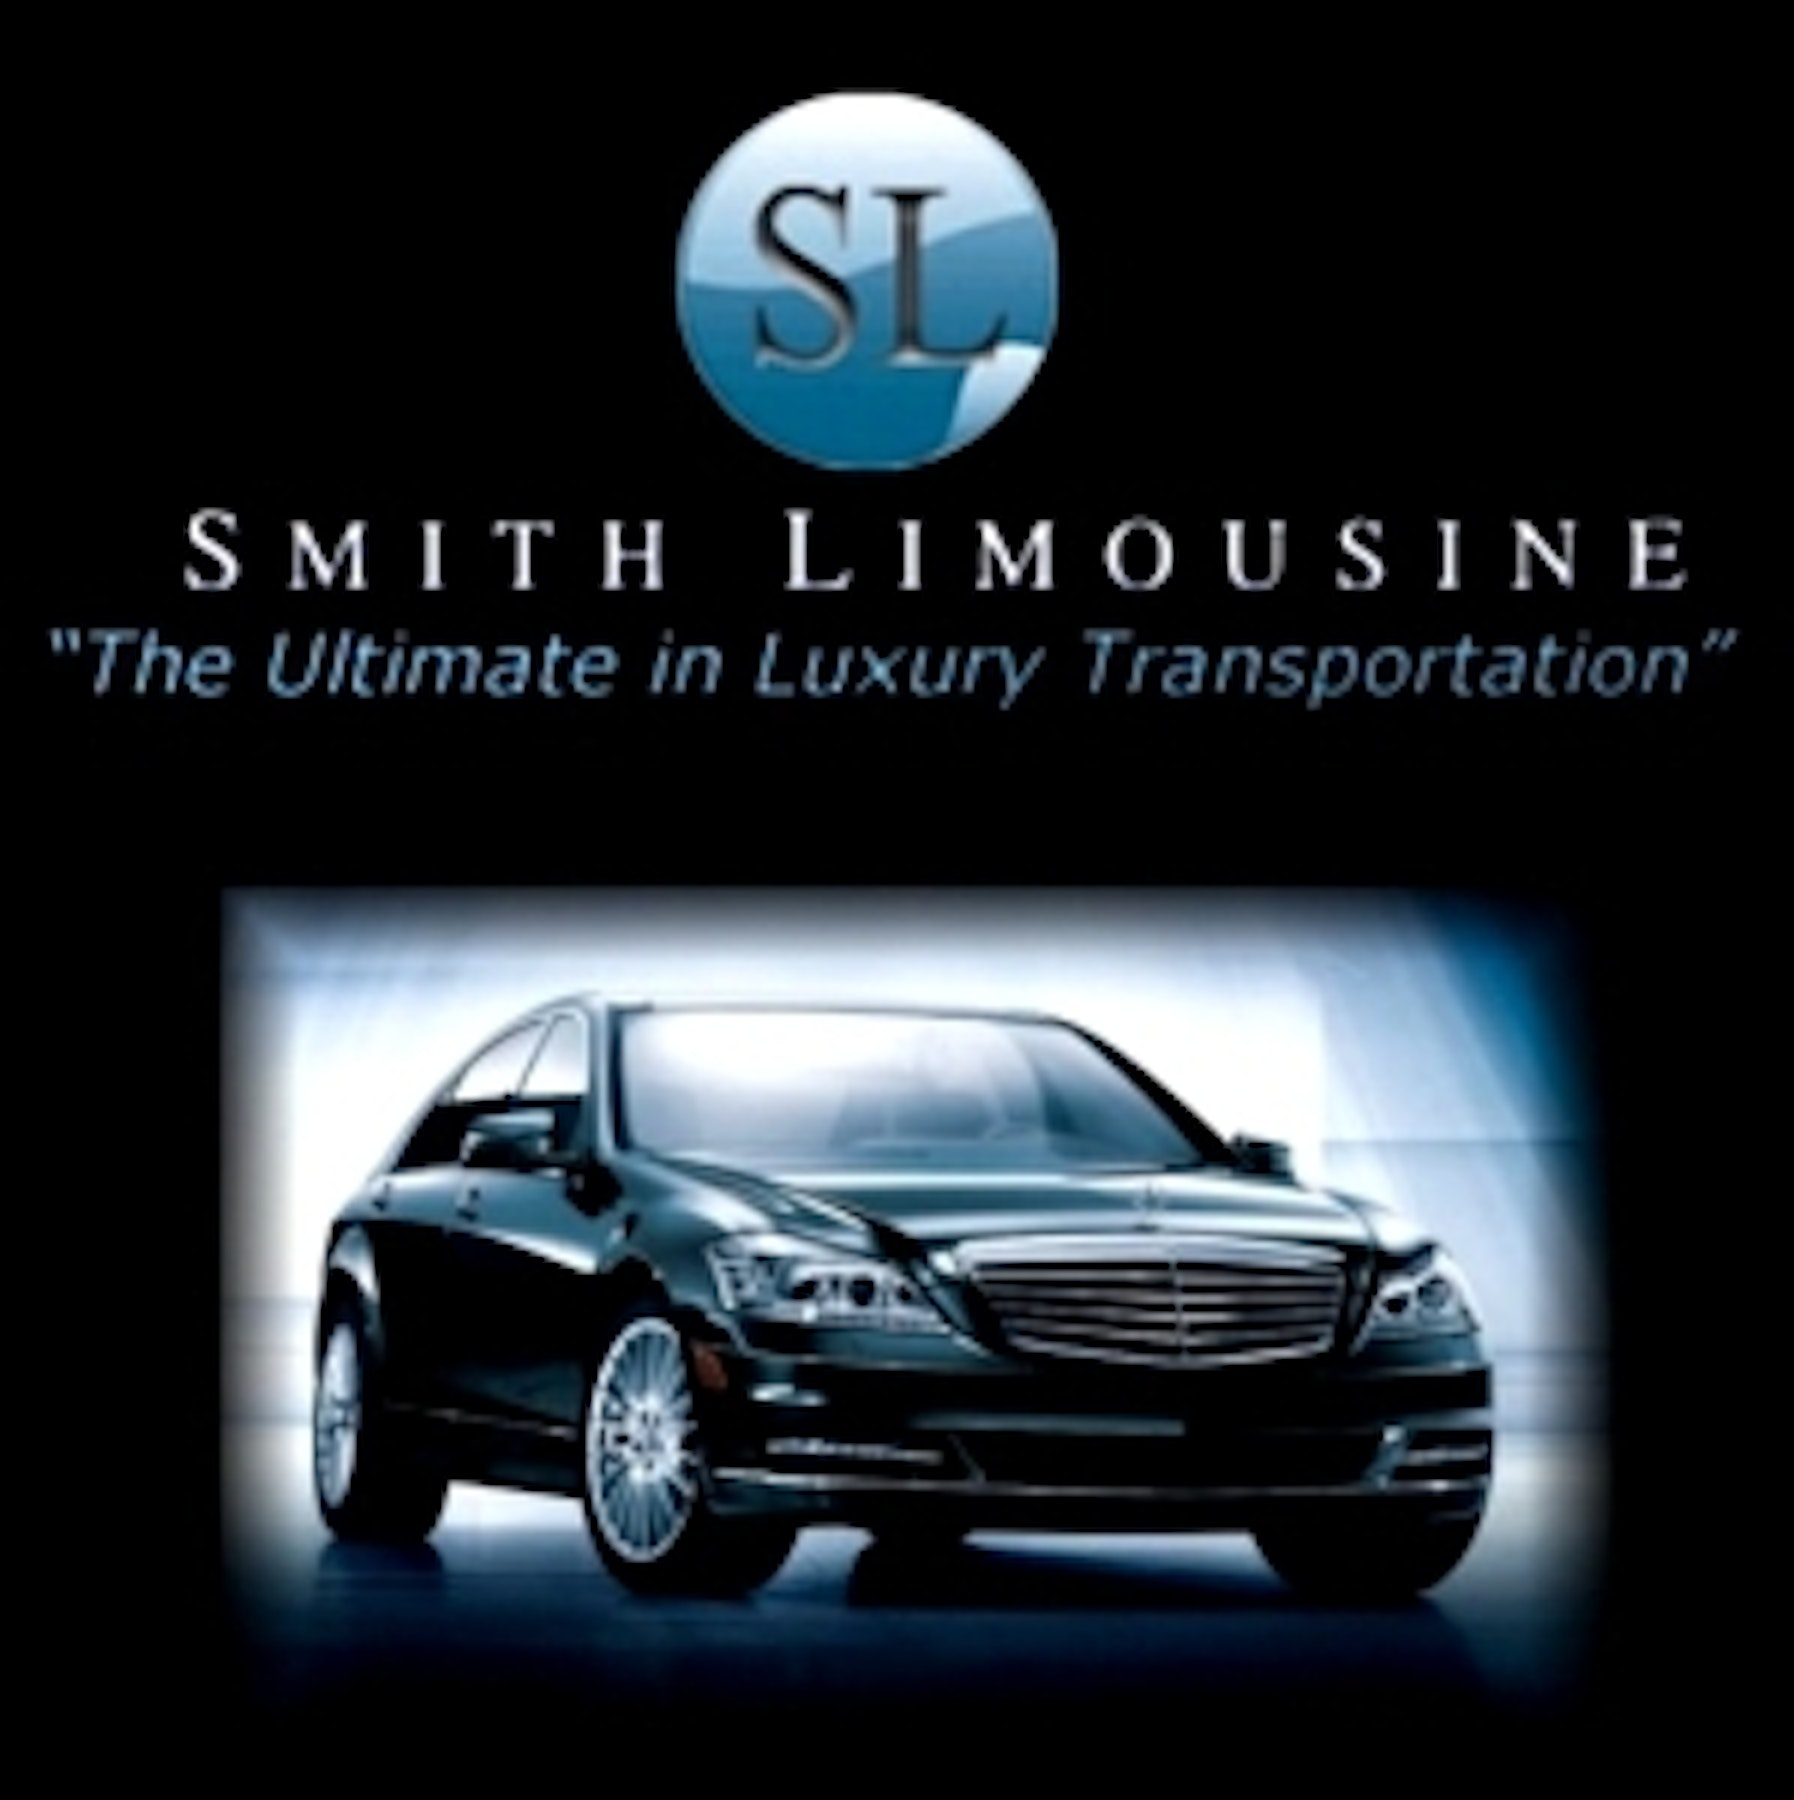 Smith Limousine in Beyond Dallas